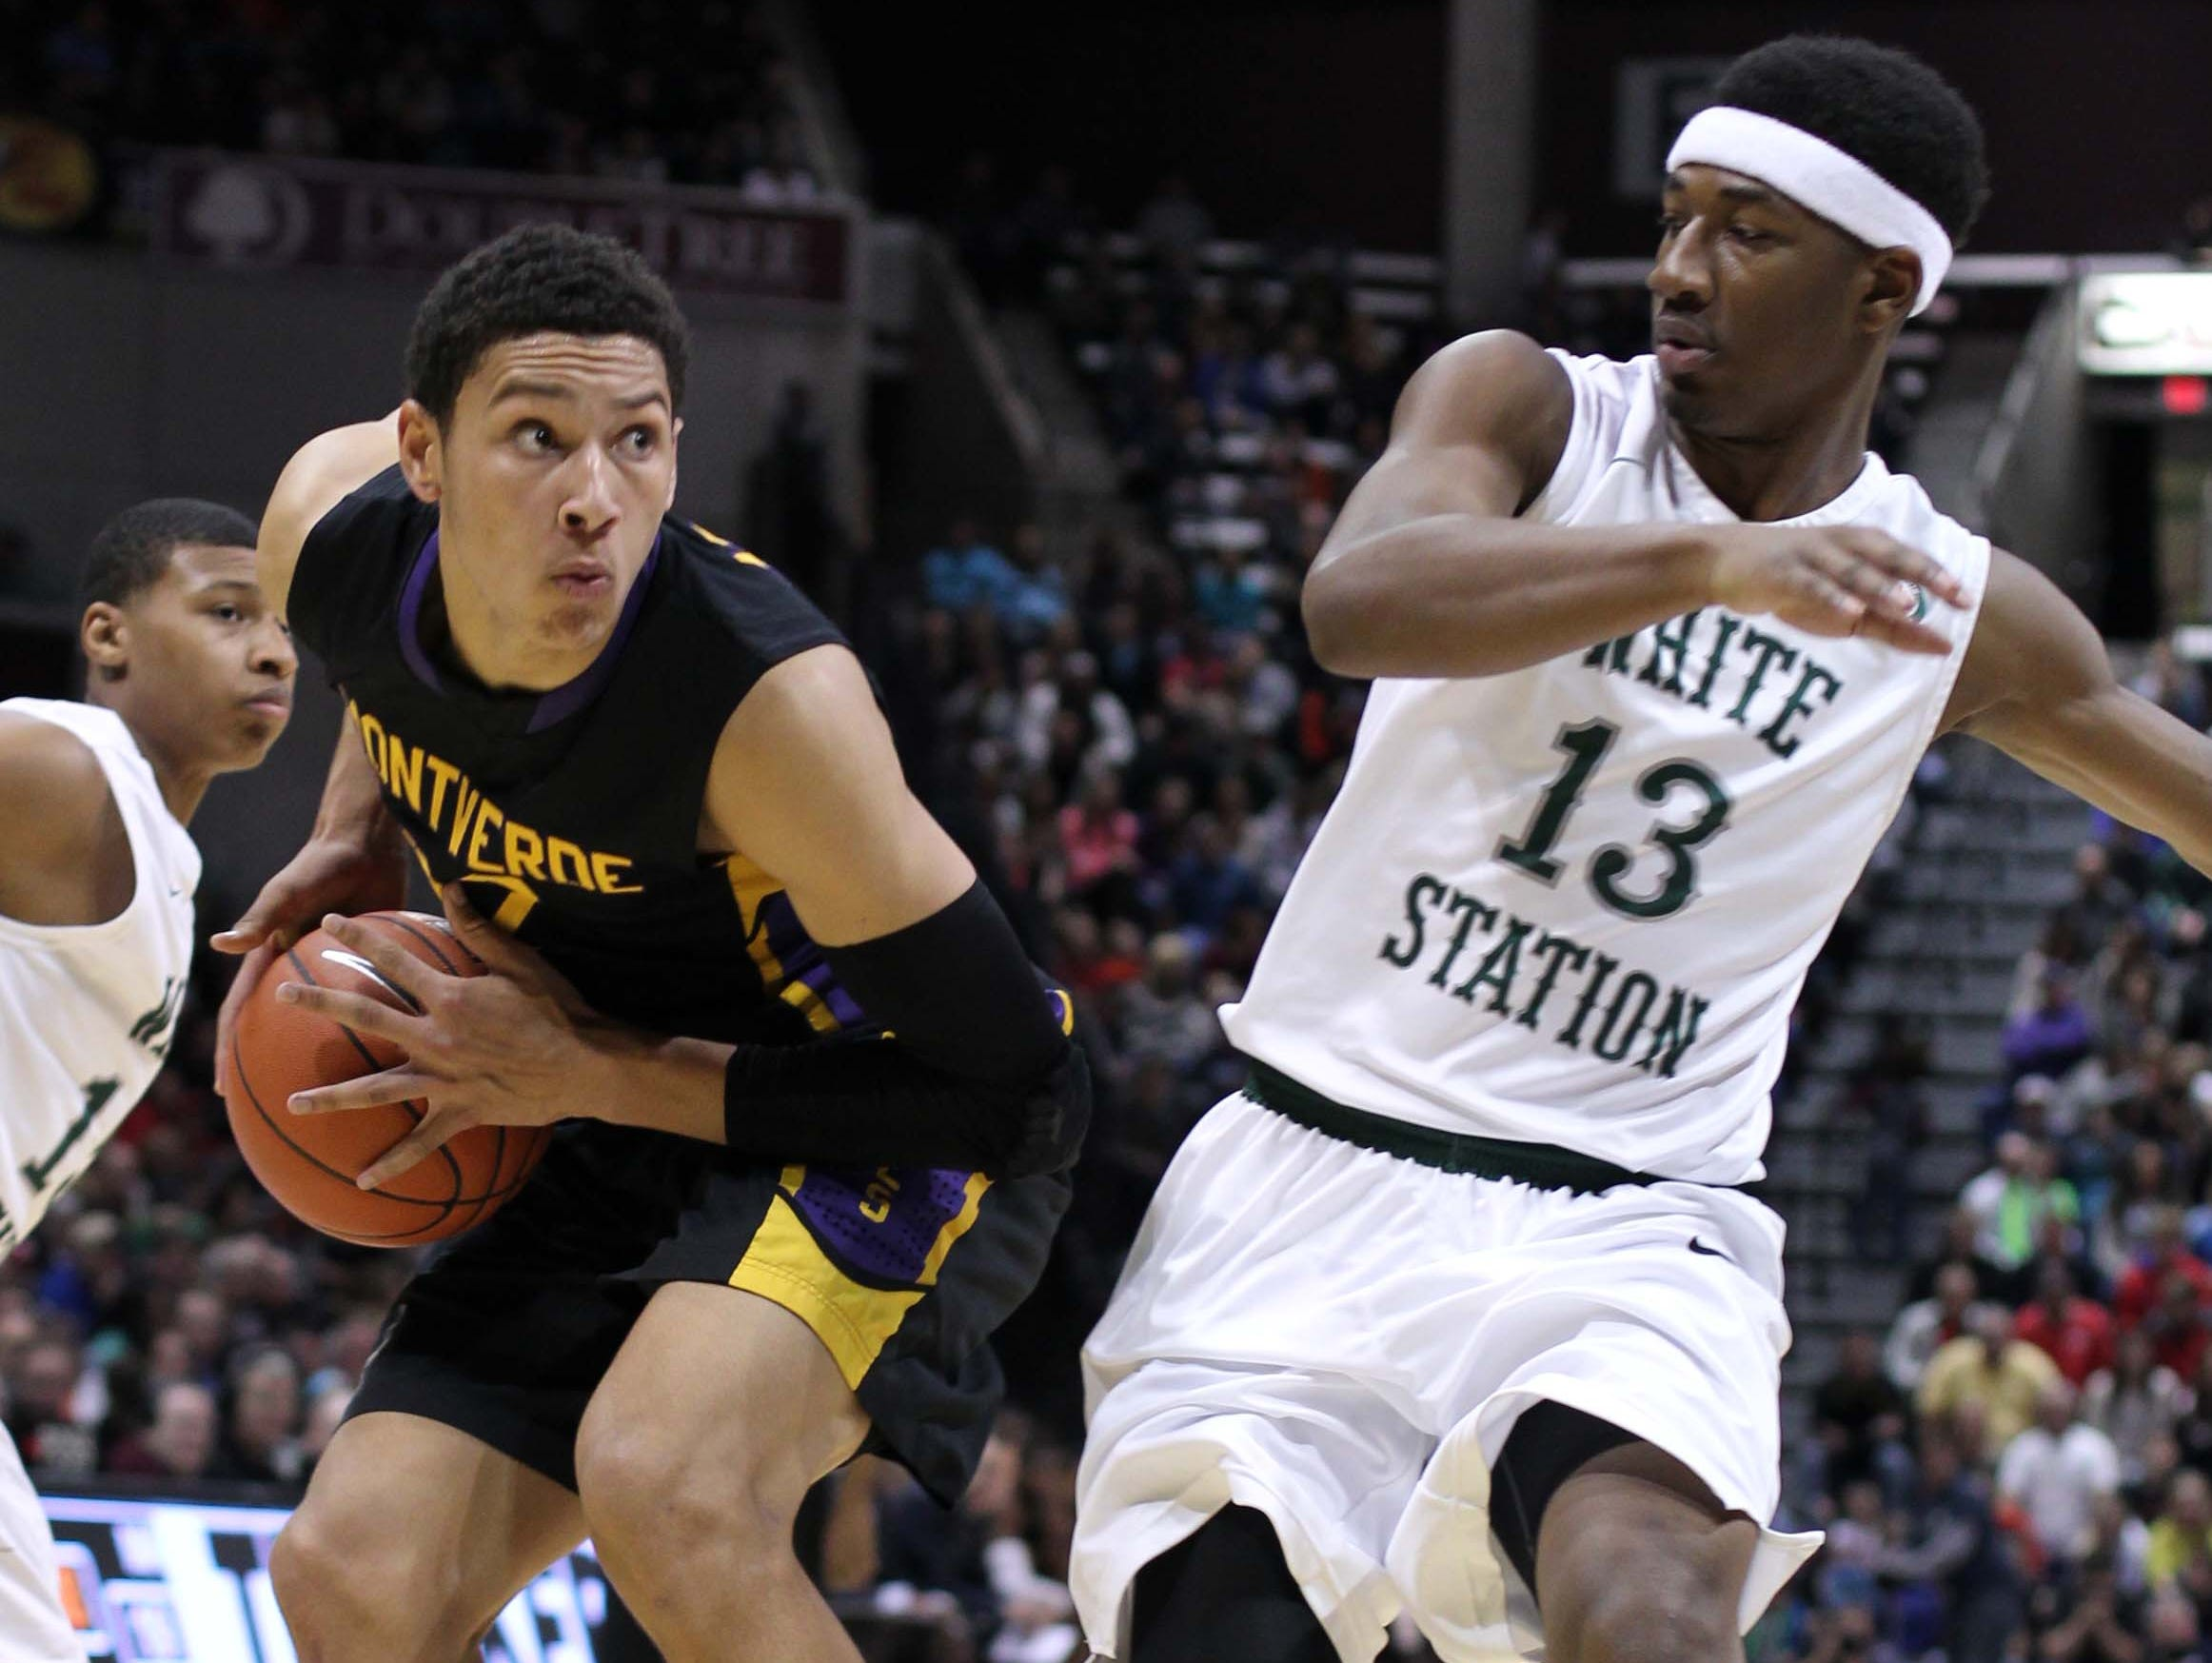 Montverde's Ben Simmons, left, appeared in the 2014 Bass Pro Tournament of Champions at JQH Arena.